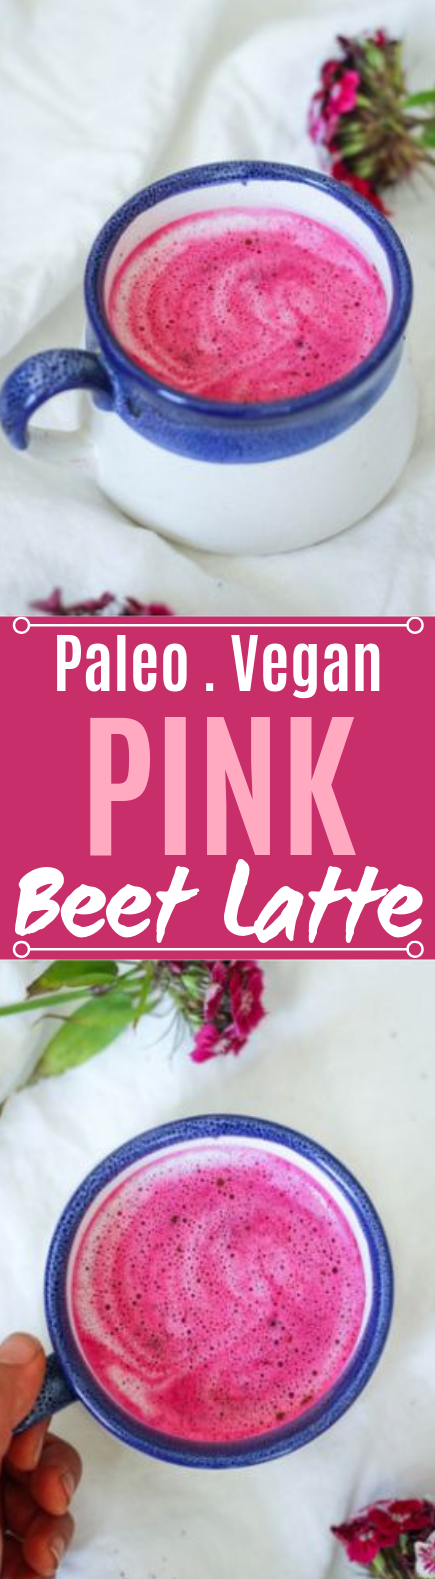 Pink Beet Latte (Paleo, Whole30, Vegan) #healthy #drinks